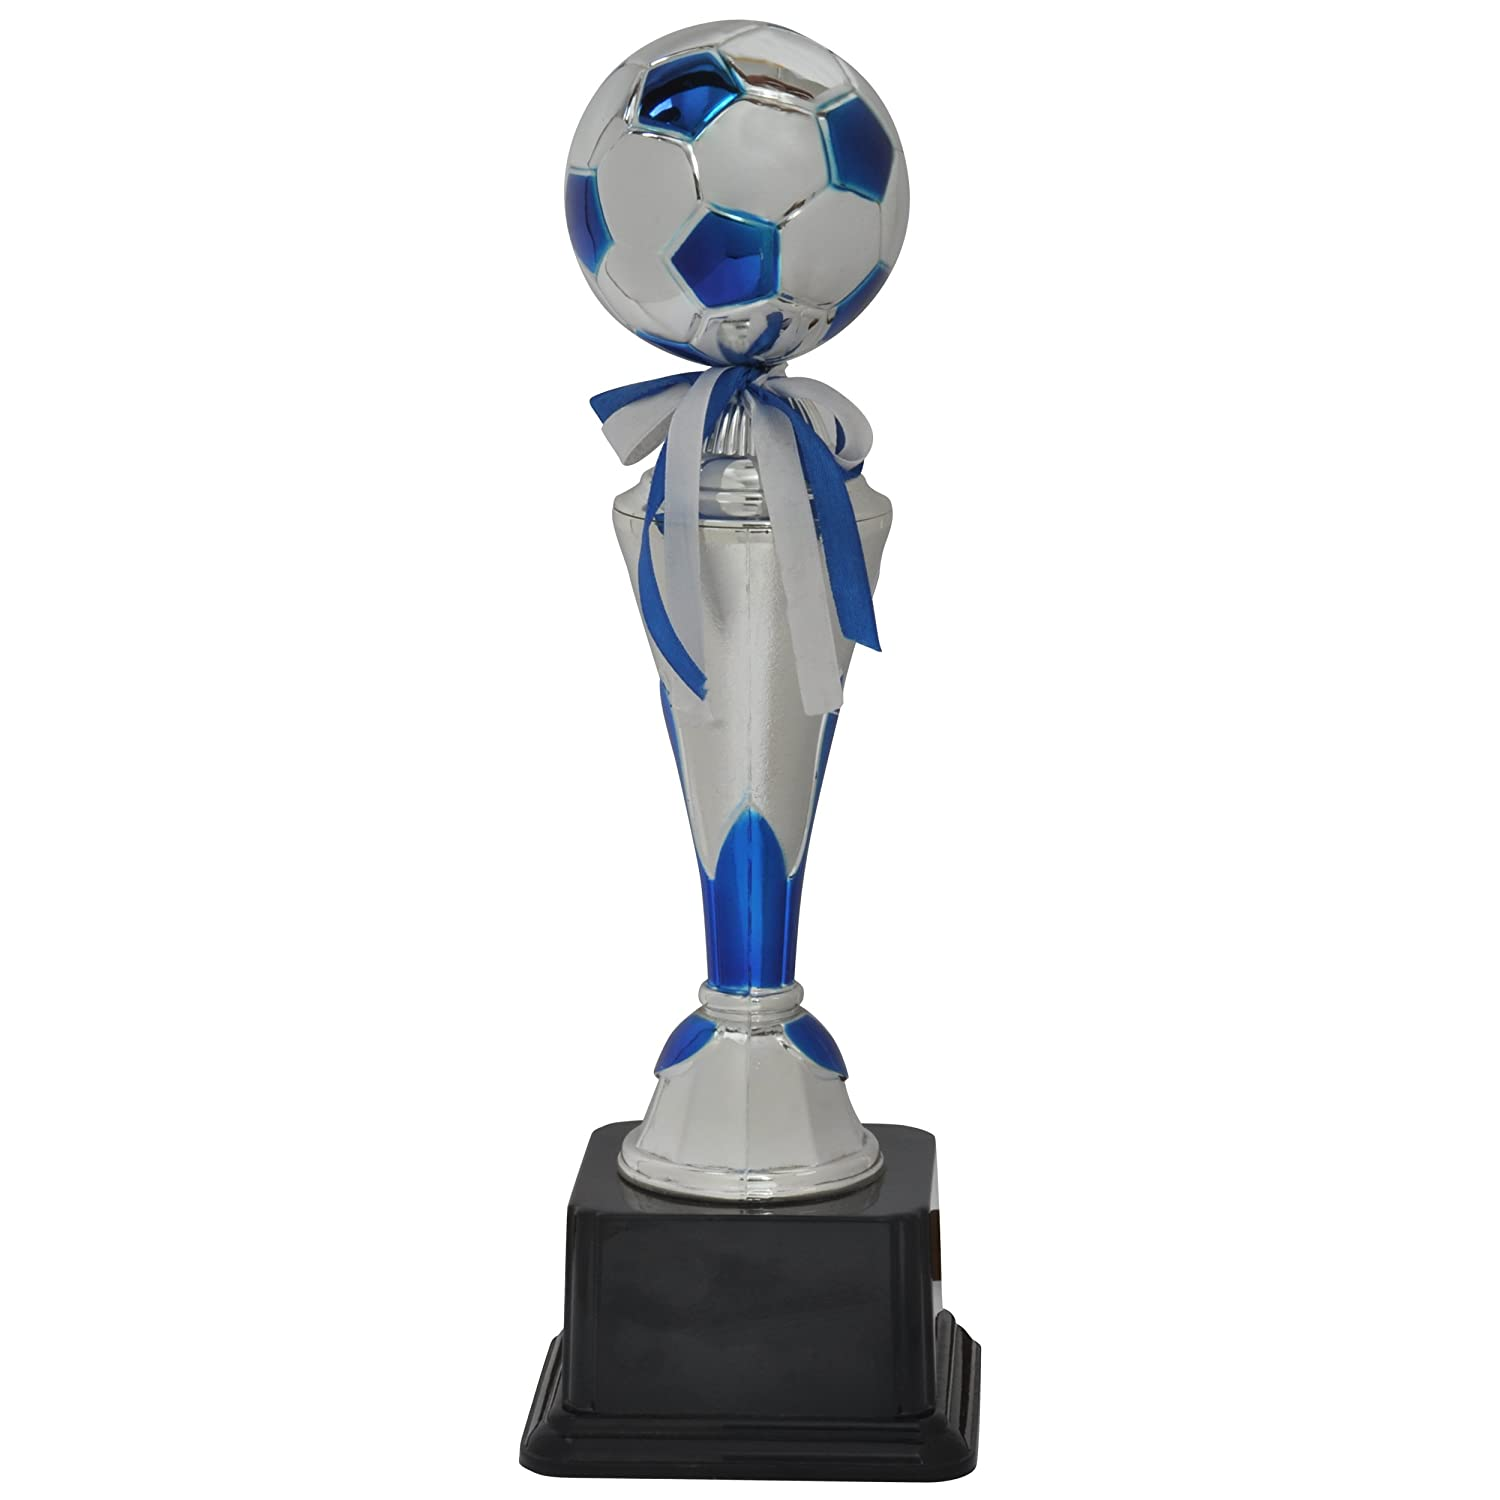 Buy Jupiter Industries Shiny Golden Football Winner Trophy Blue